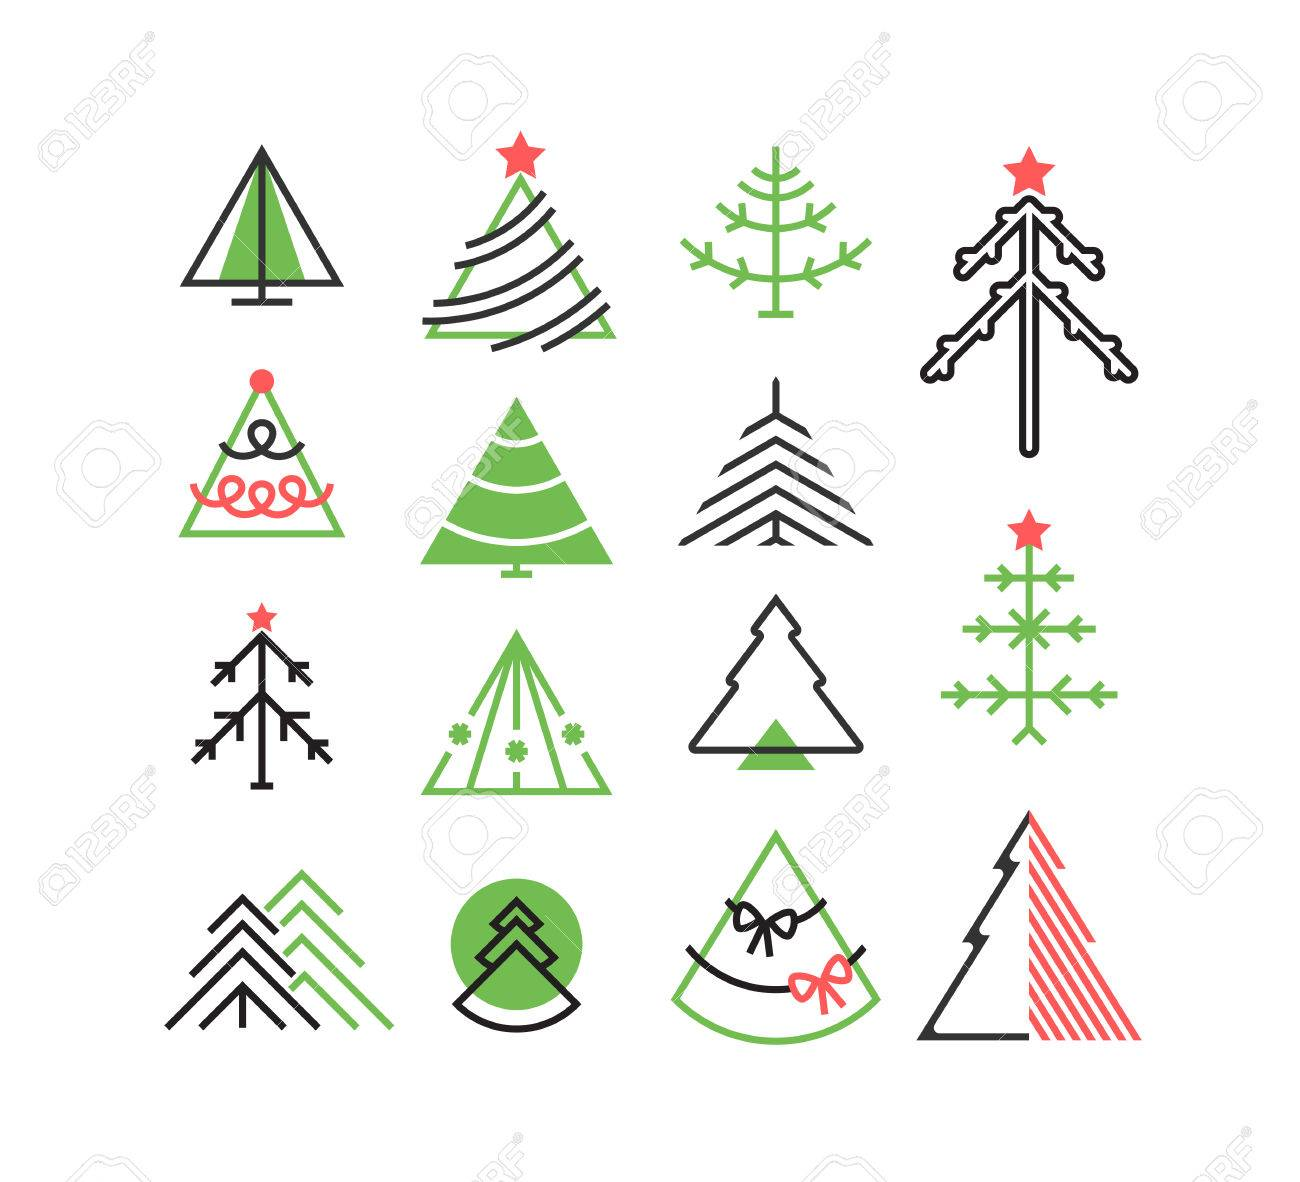 Christmas Tree Icons.Vector Set Of Graphical Color Christmas Tree Icons Signs Symbols